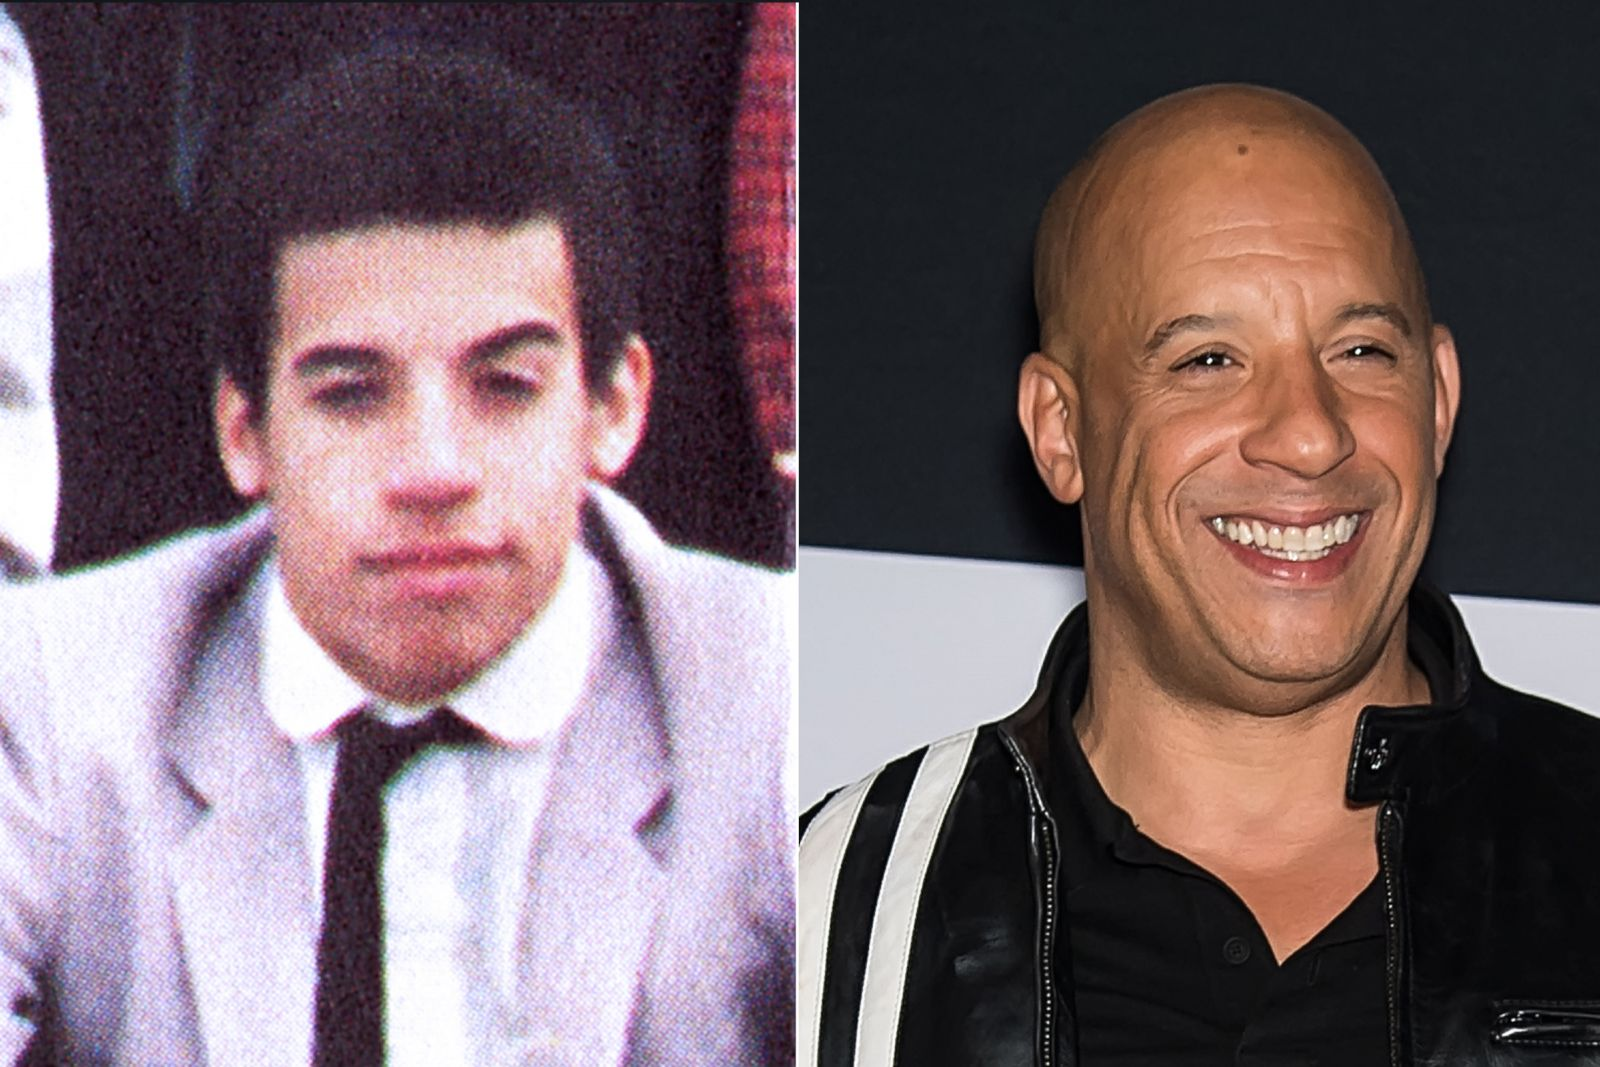 ' ' from the web at 'https://s.abcnews.com/images/Entertainment/vin-diesel-ht-gty-ml-1707017_3x2_1600.jpg'